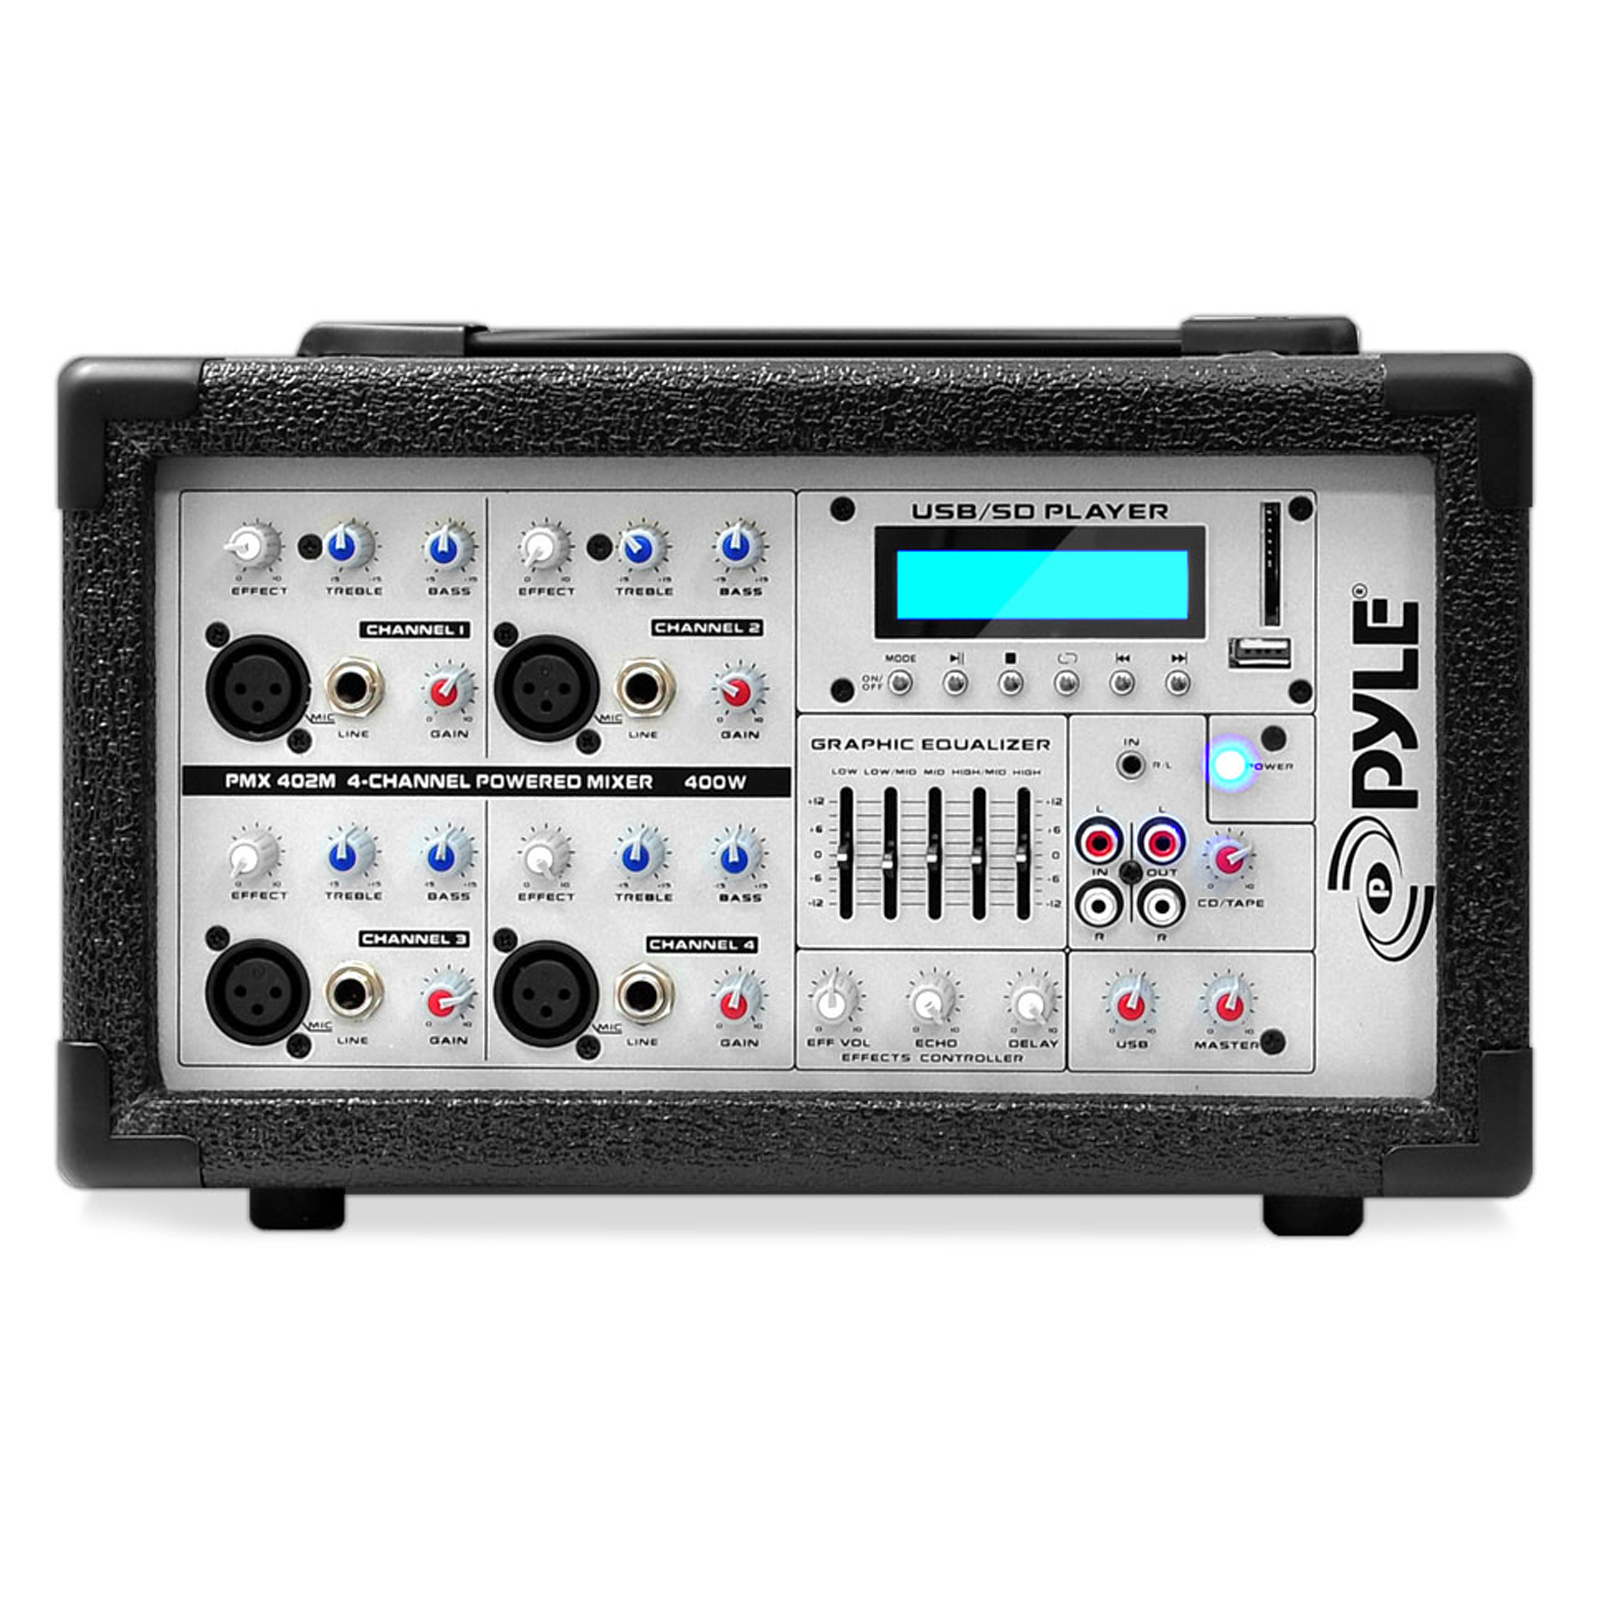 PYLE-PRO PMX402M 400-Watt 4-Channel Powered Mixer with MP3 USB Input